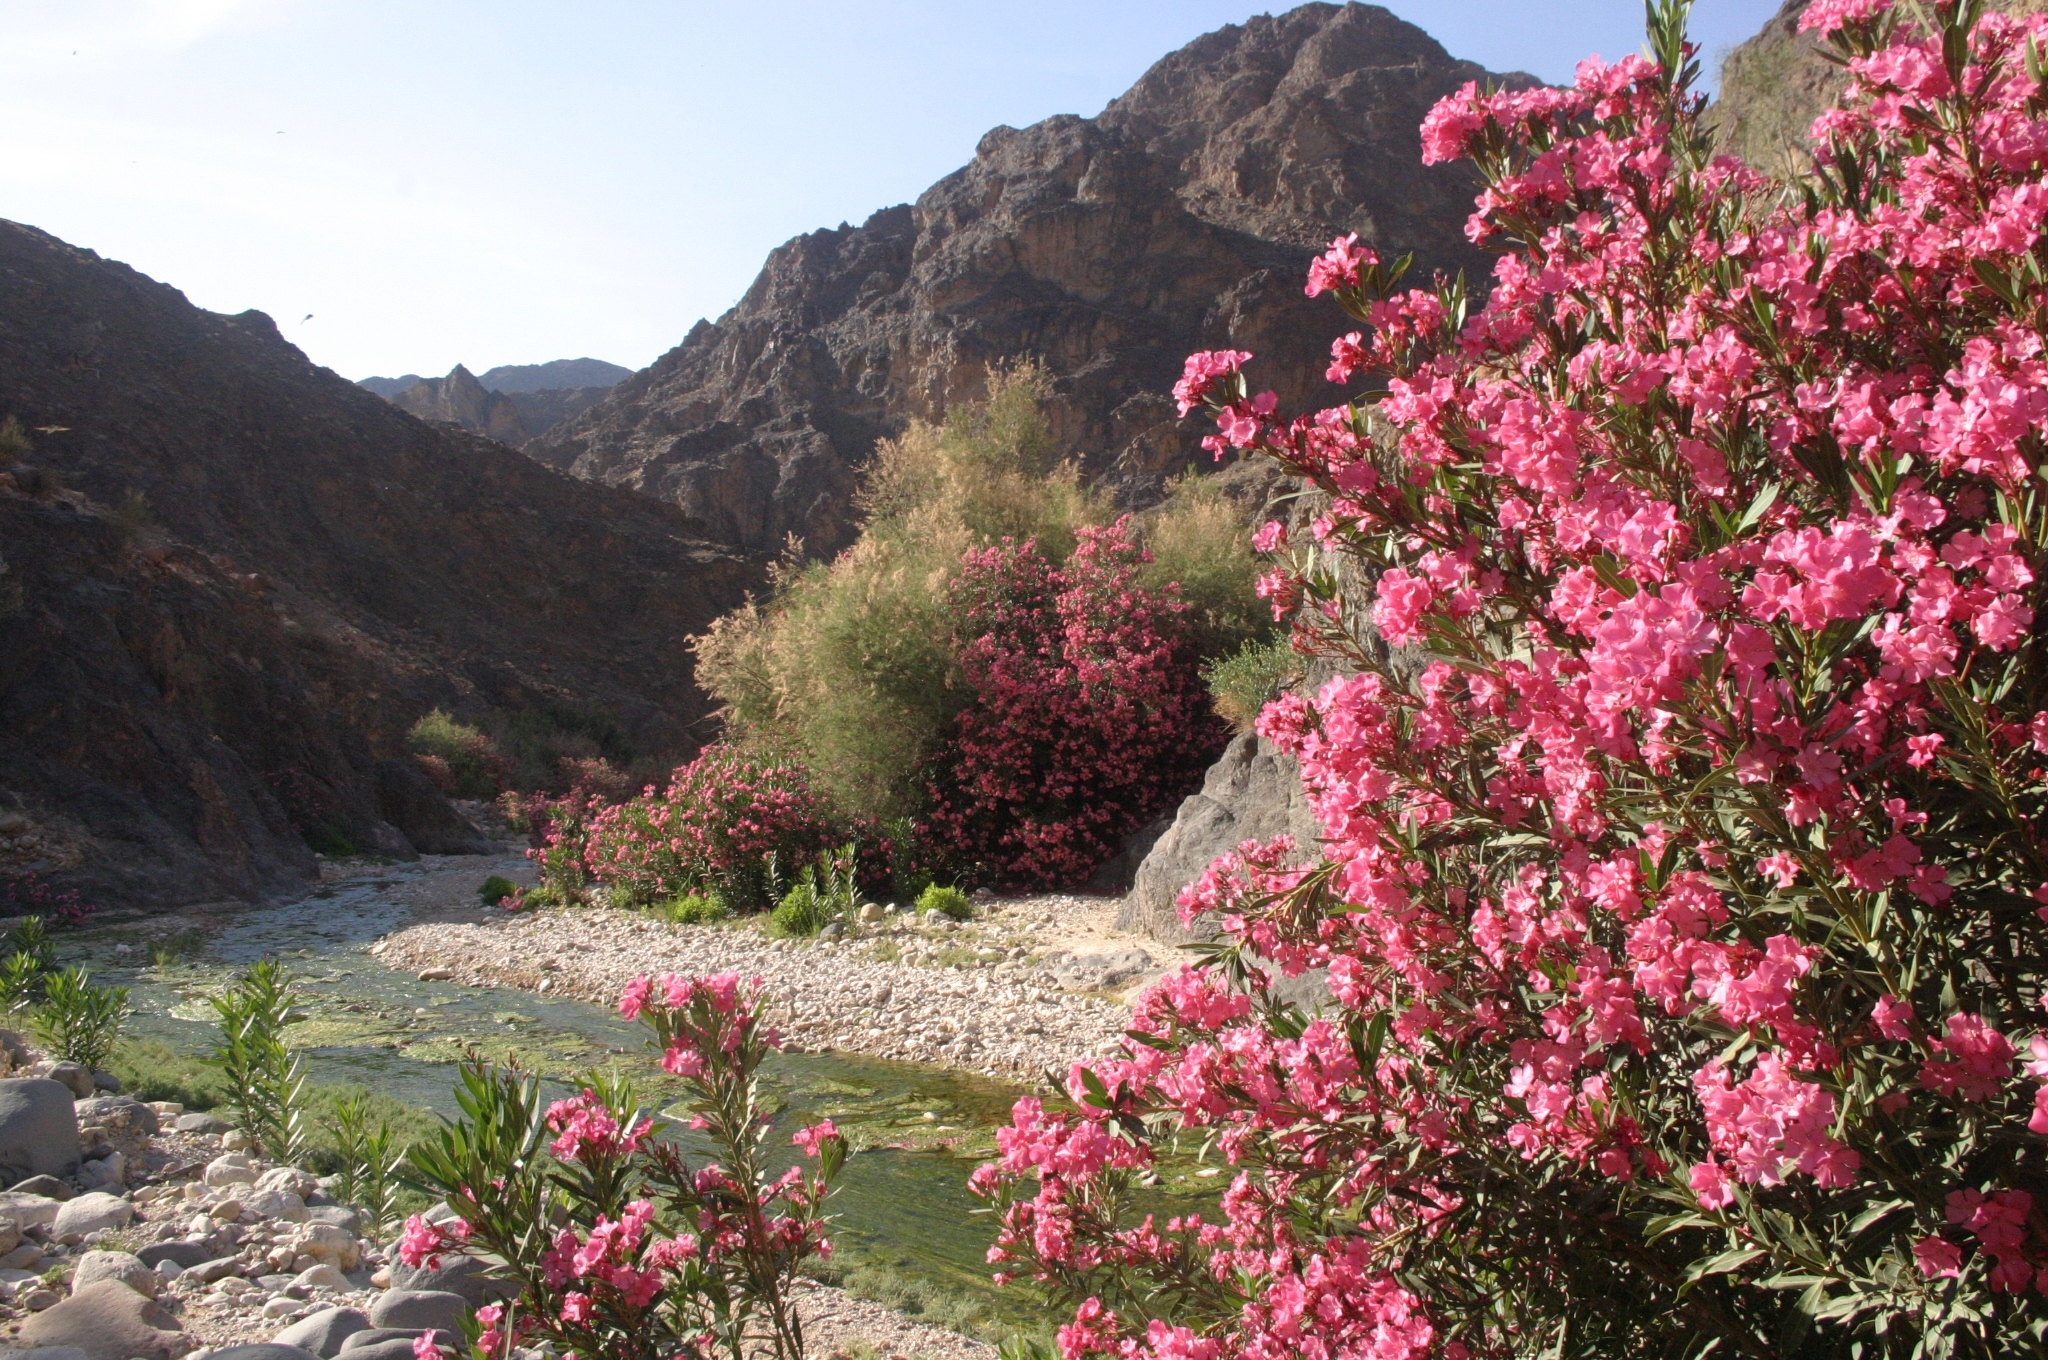 Oleander line the basin of the Wadi Dana.